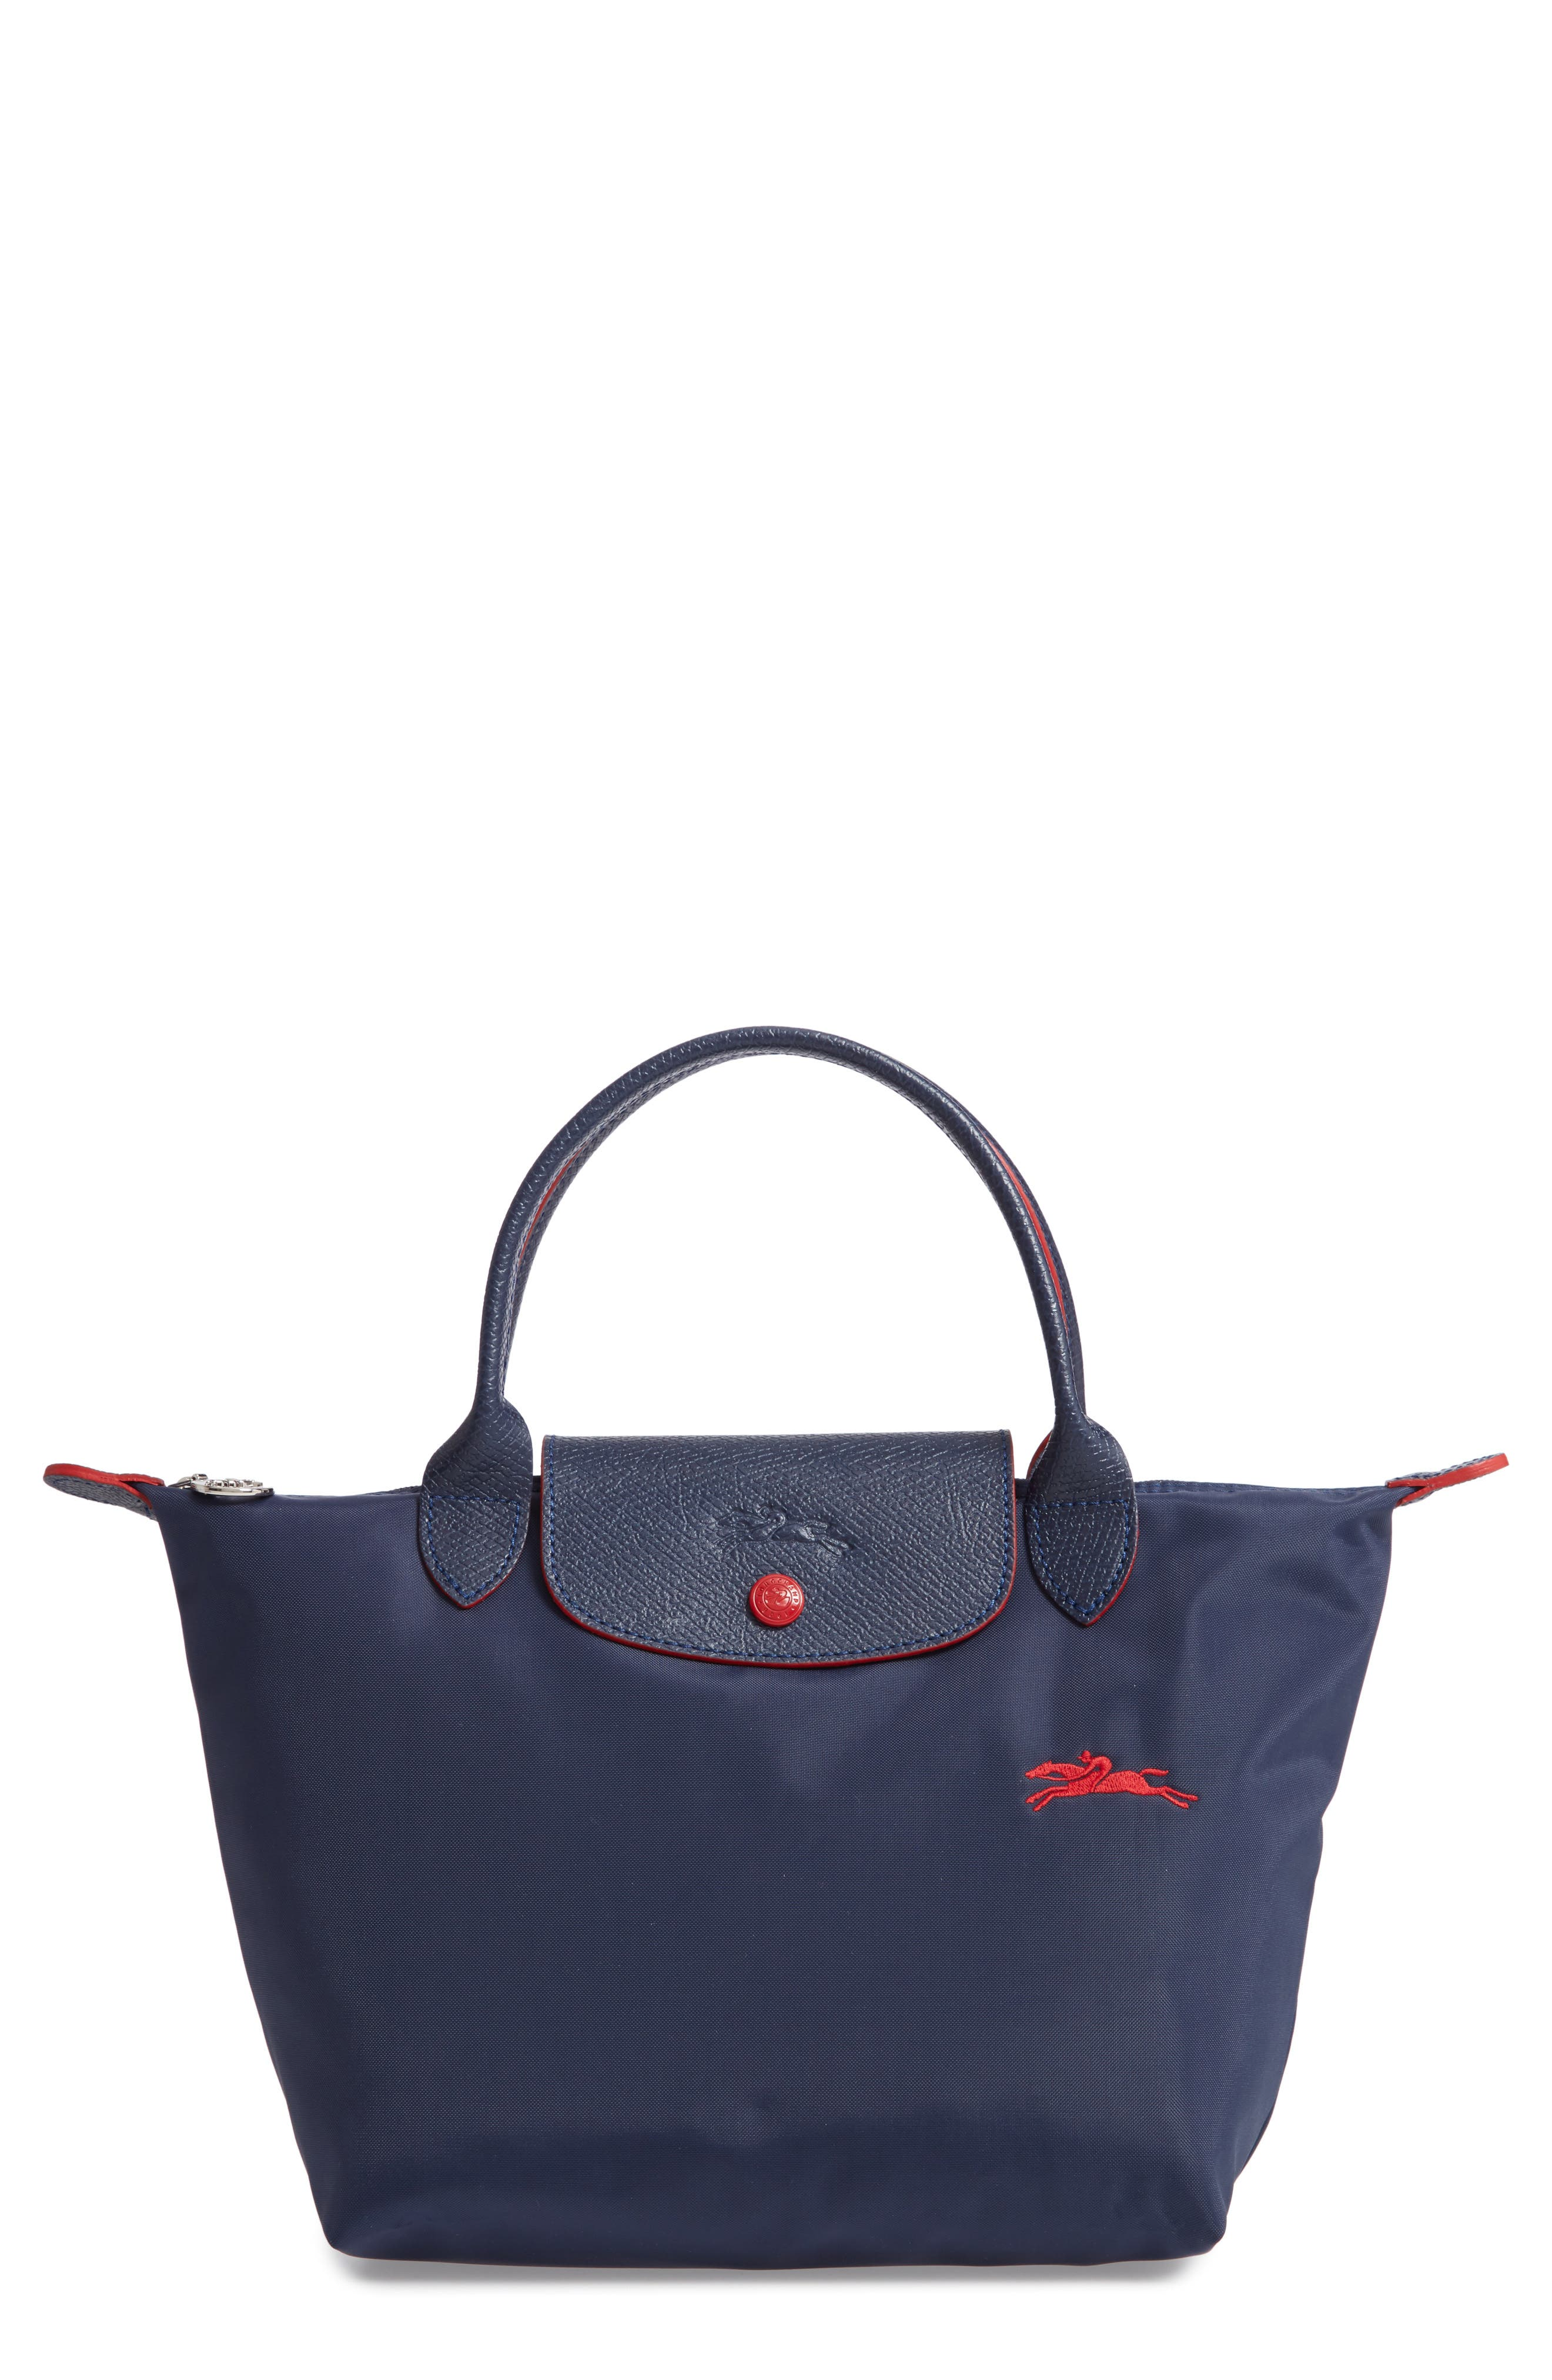 Le Pliage Club Small Top-Handle Tote Bag in Navy